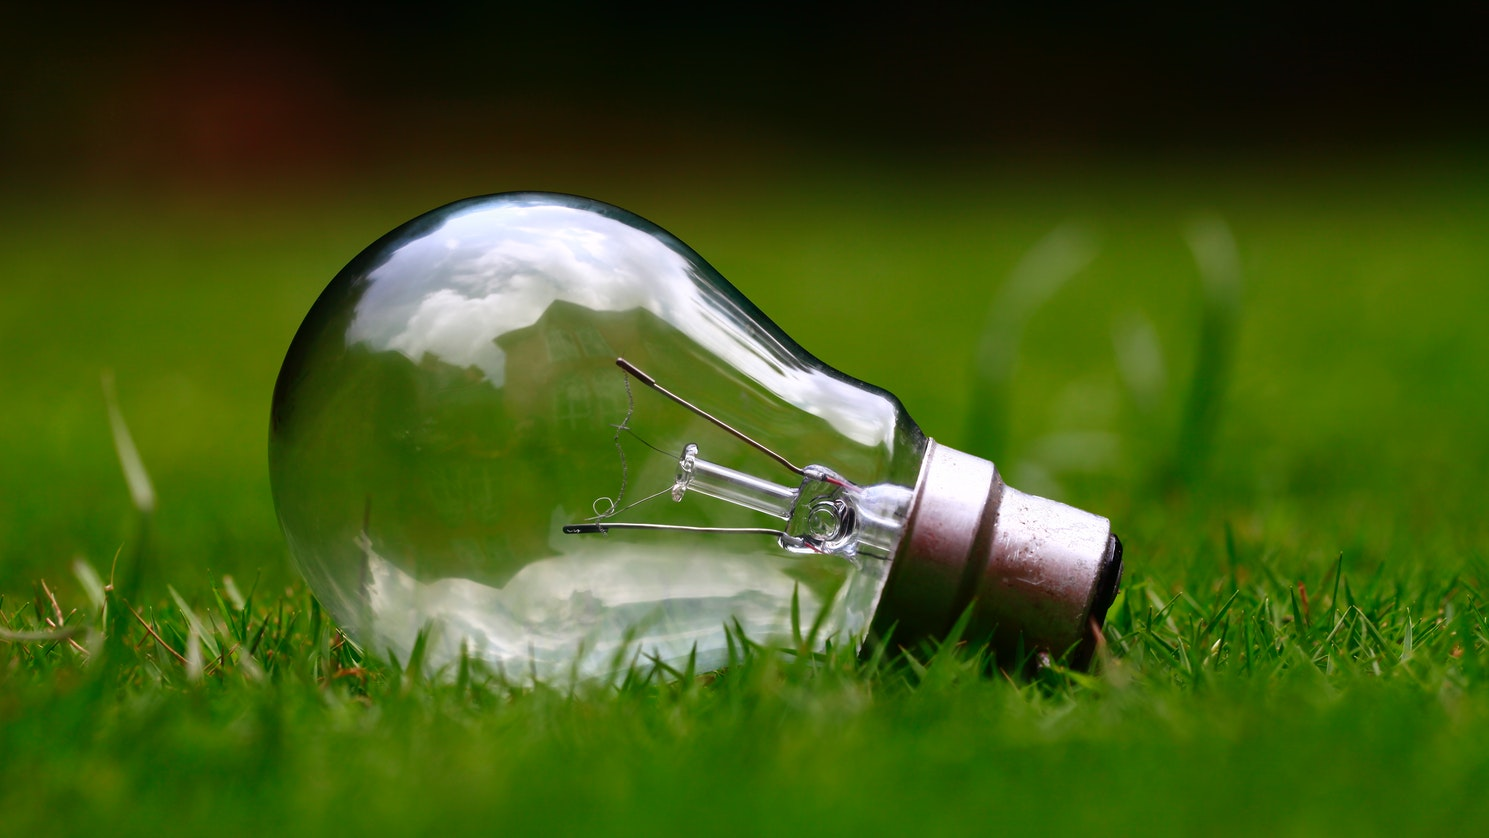 A light bulb sitting in grass.